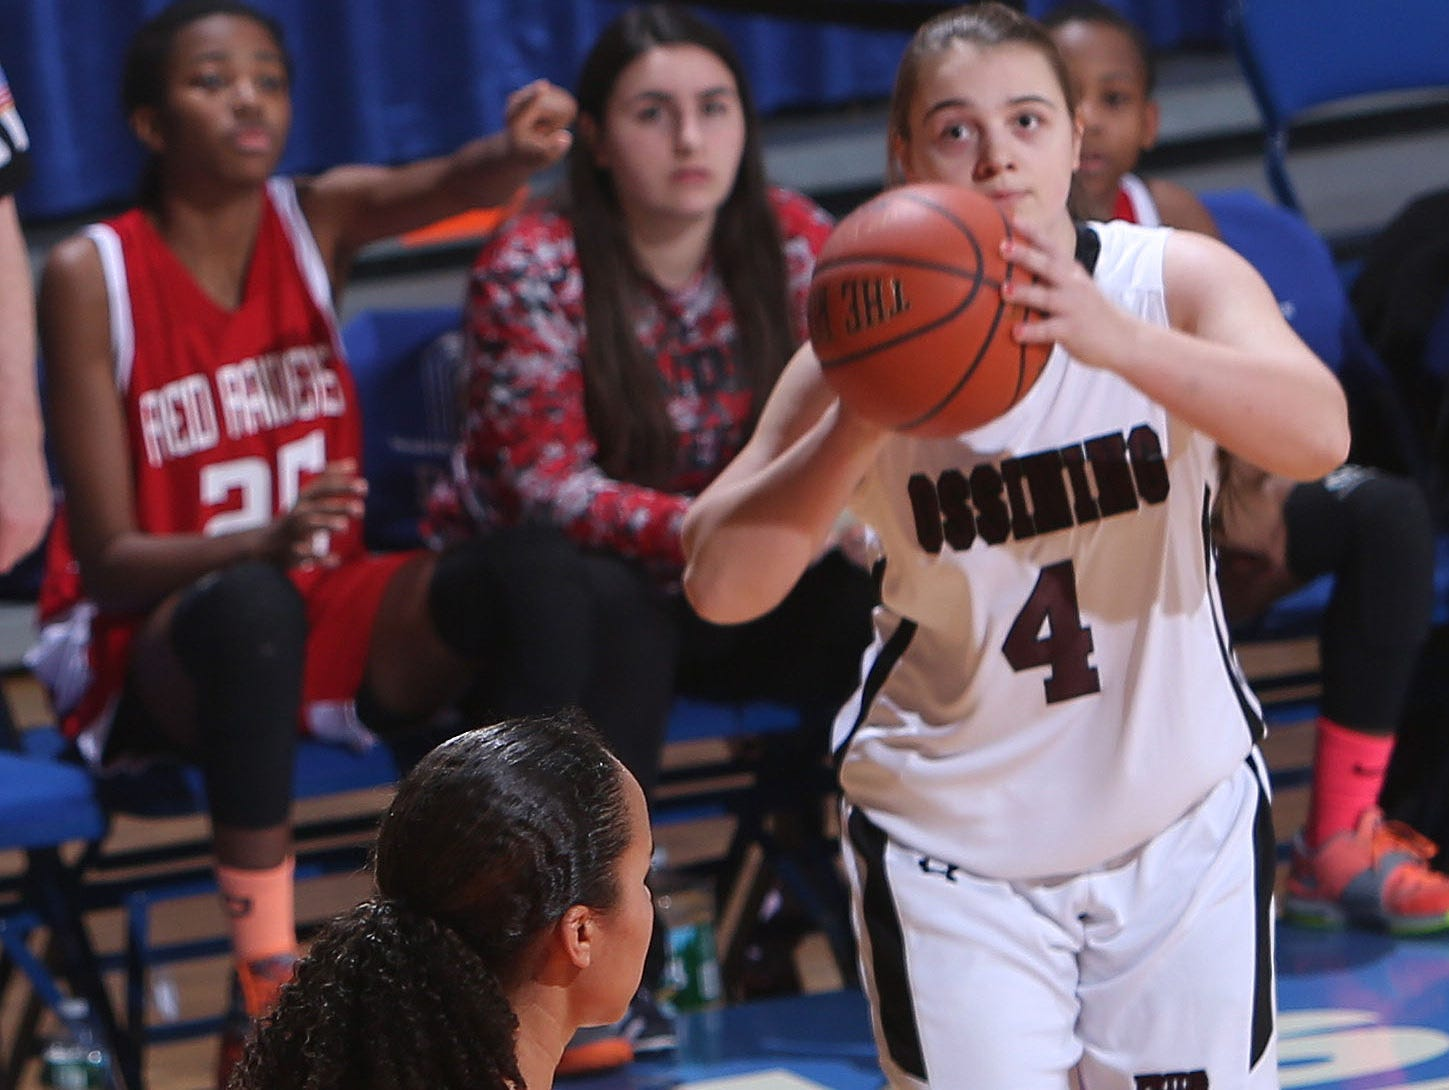 Ossining defeated North Rockland 82-62 in the girls basketball Section 1 Class AA semifinal at the Westchester County Center in White Plains Feb. 26, 2015.